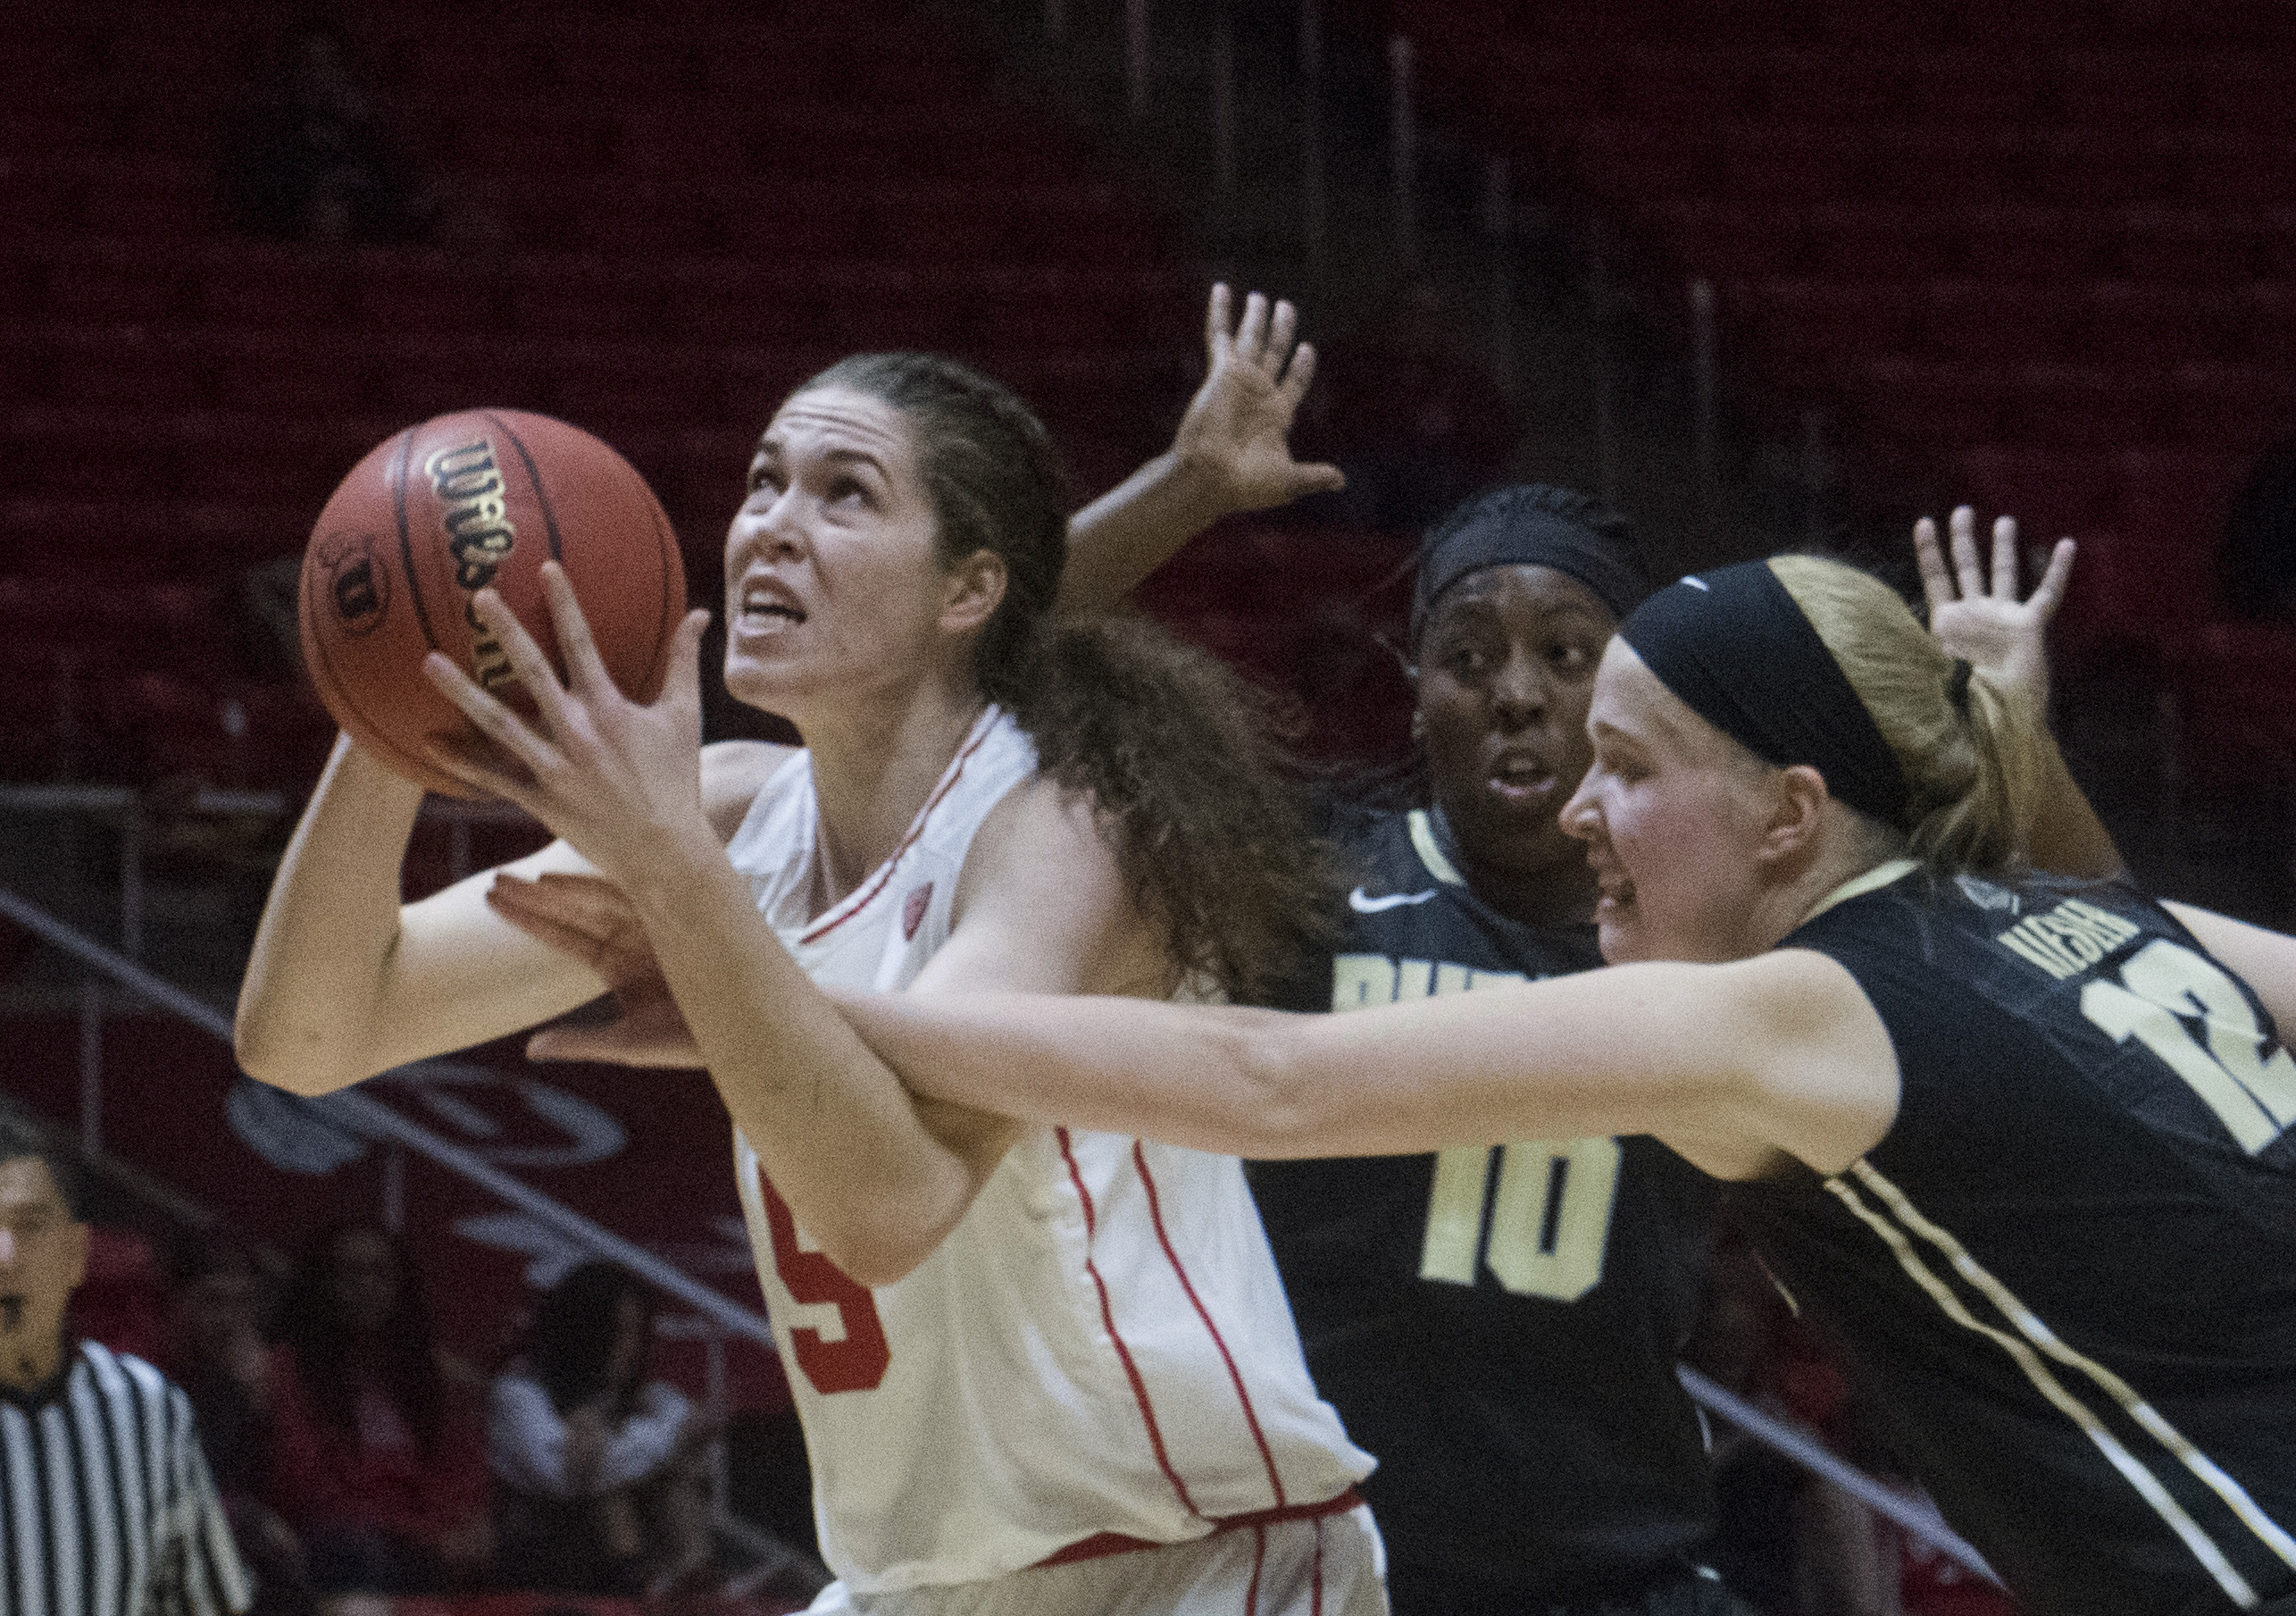 (Rick Egan  |  The Salt Lake Tribune)  Utah Utes center Megan Huff (5) is fouled by Purdue Boilermakers center Nora Kiesler (12) as she goes to the hoop, in basketball action Utah Utes vs. Purdue Boilermakers, at the Thomas M. Huntsman Center, Monday, November 20, 2017.